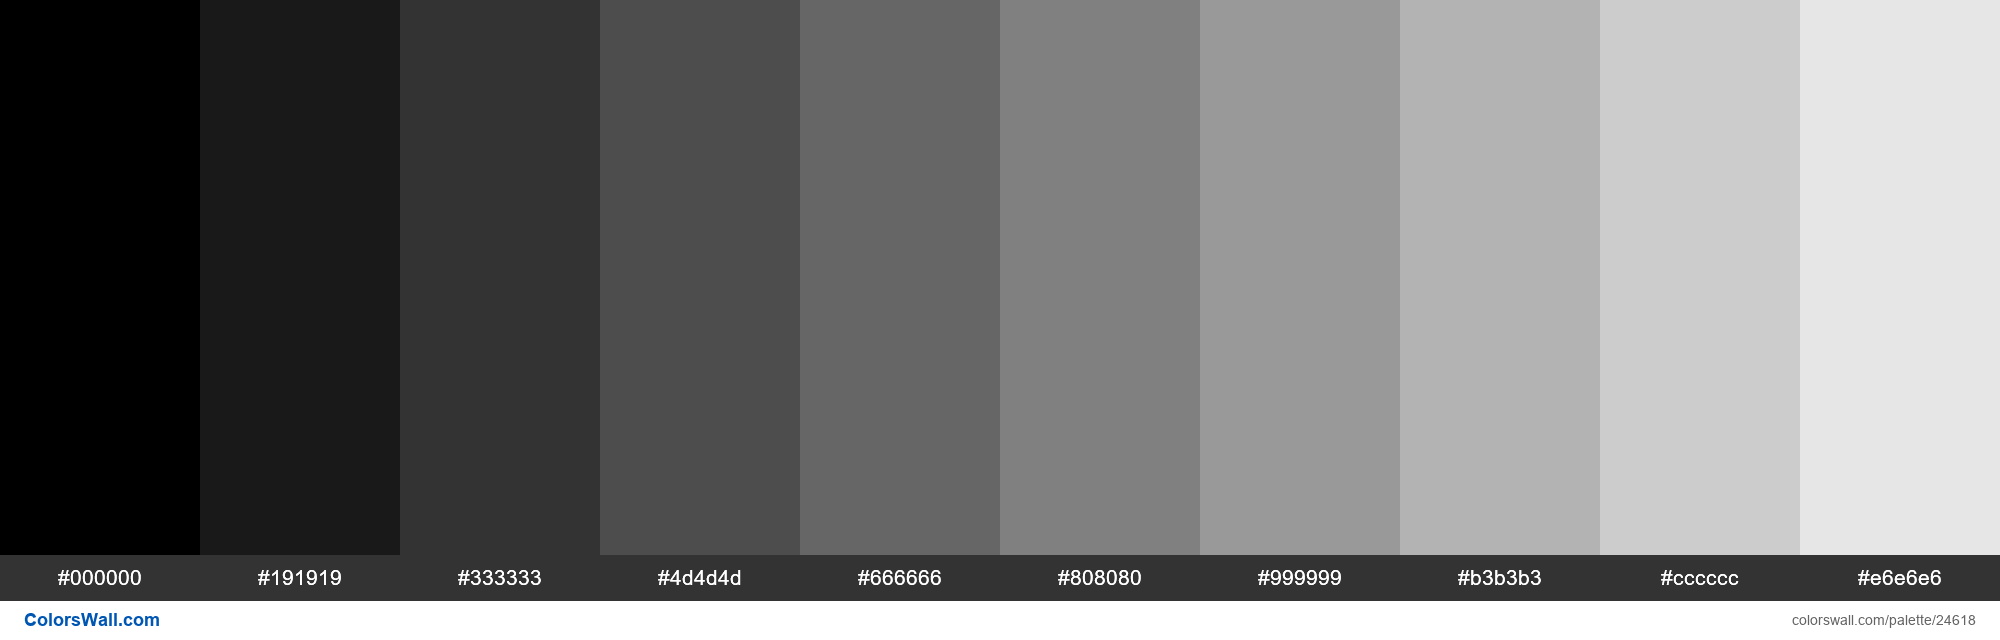 Tints of Black #000000 hex color - #24618